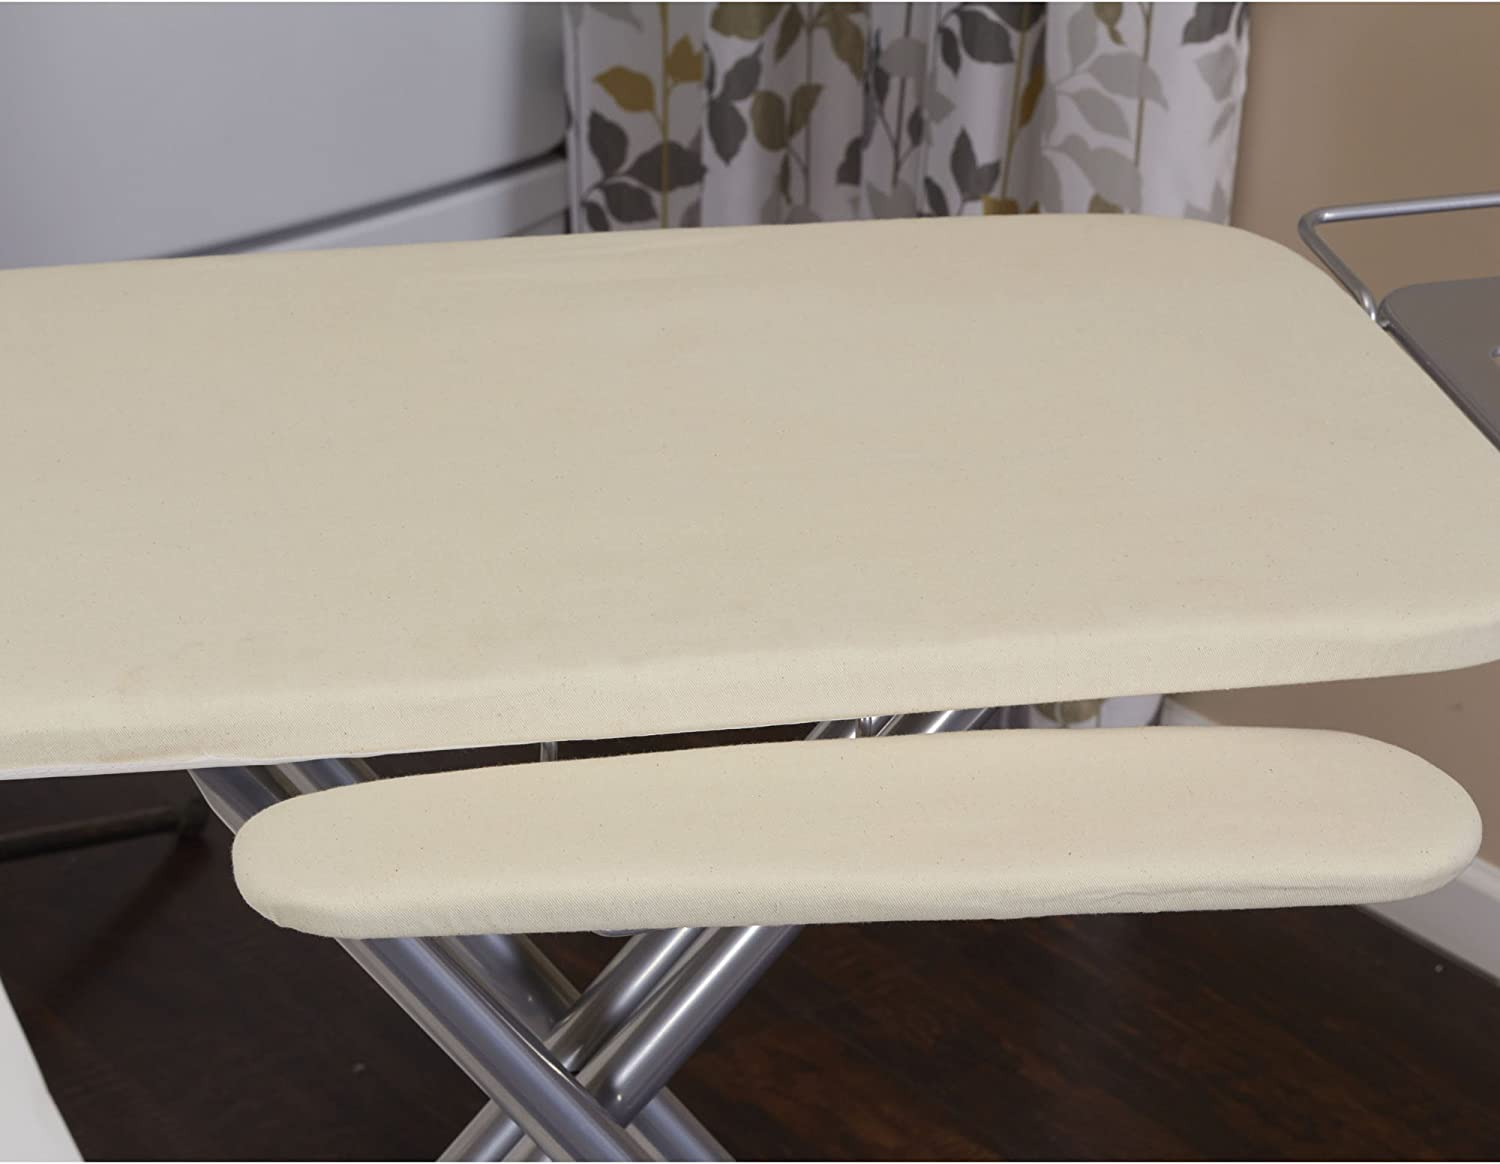 Household Essentials 971840 1 Wide Top 4 Leg Mega Ironing Board With Adjustable Height And Bonus Sleeve Board Natural Cotton Cover Amazon Ca Home Kitchen